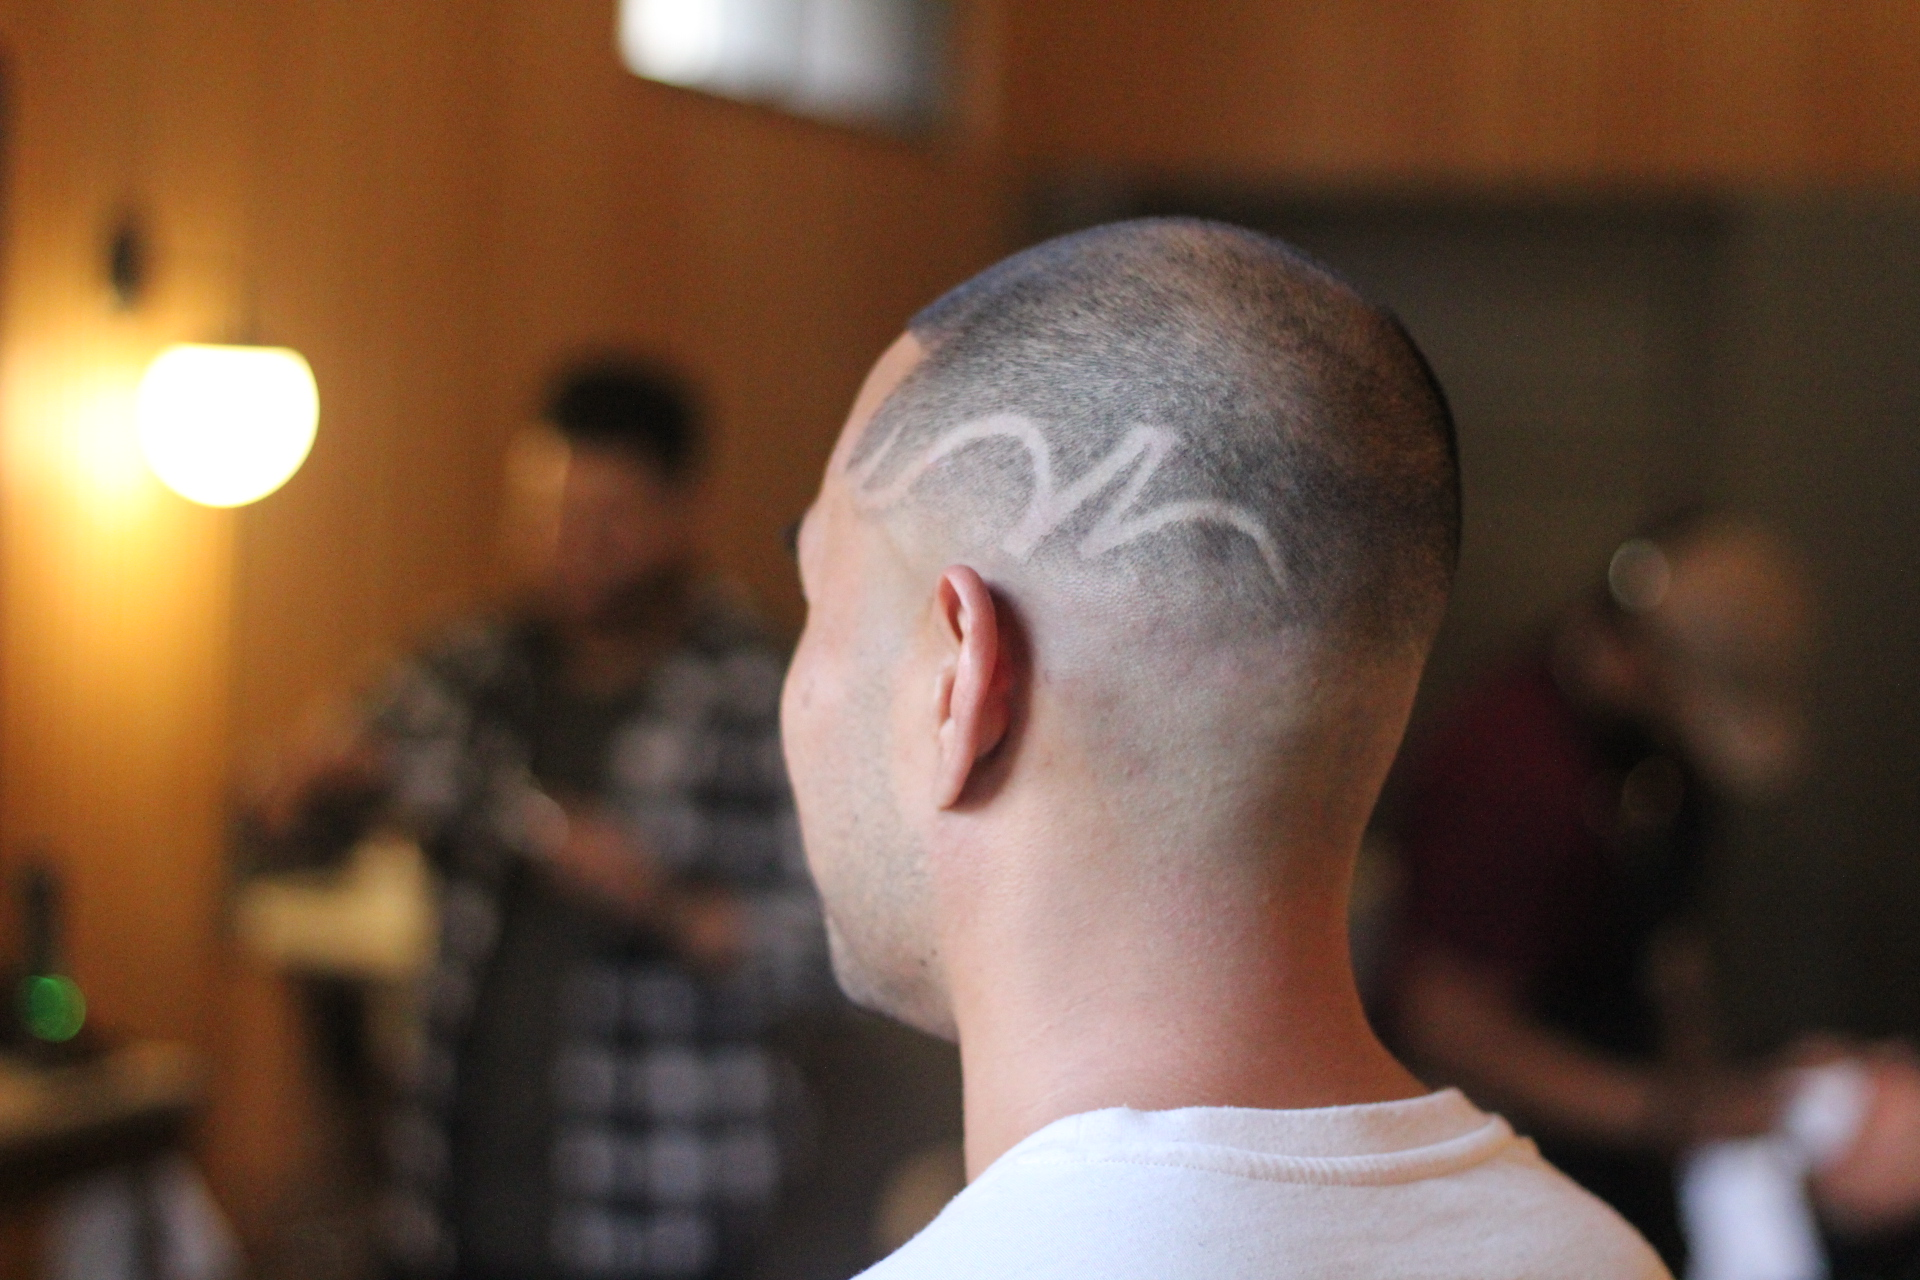 Add a Design to any Haircut - Showcase your personality by adding a design of your choice to any haircut.